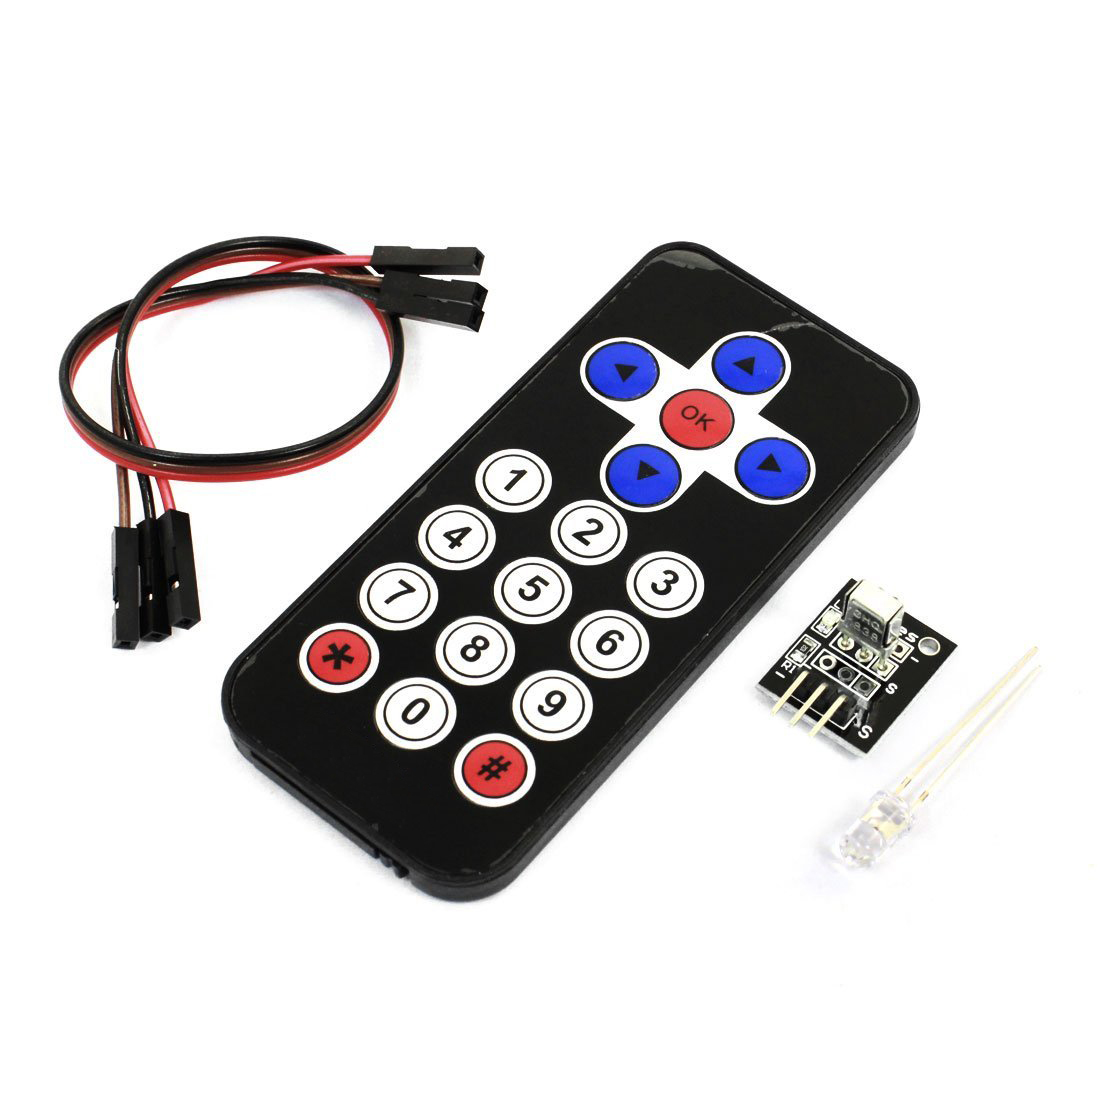 Nº Discount for cheap wireless remote control kits for arduino and